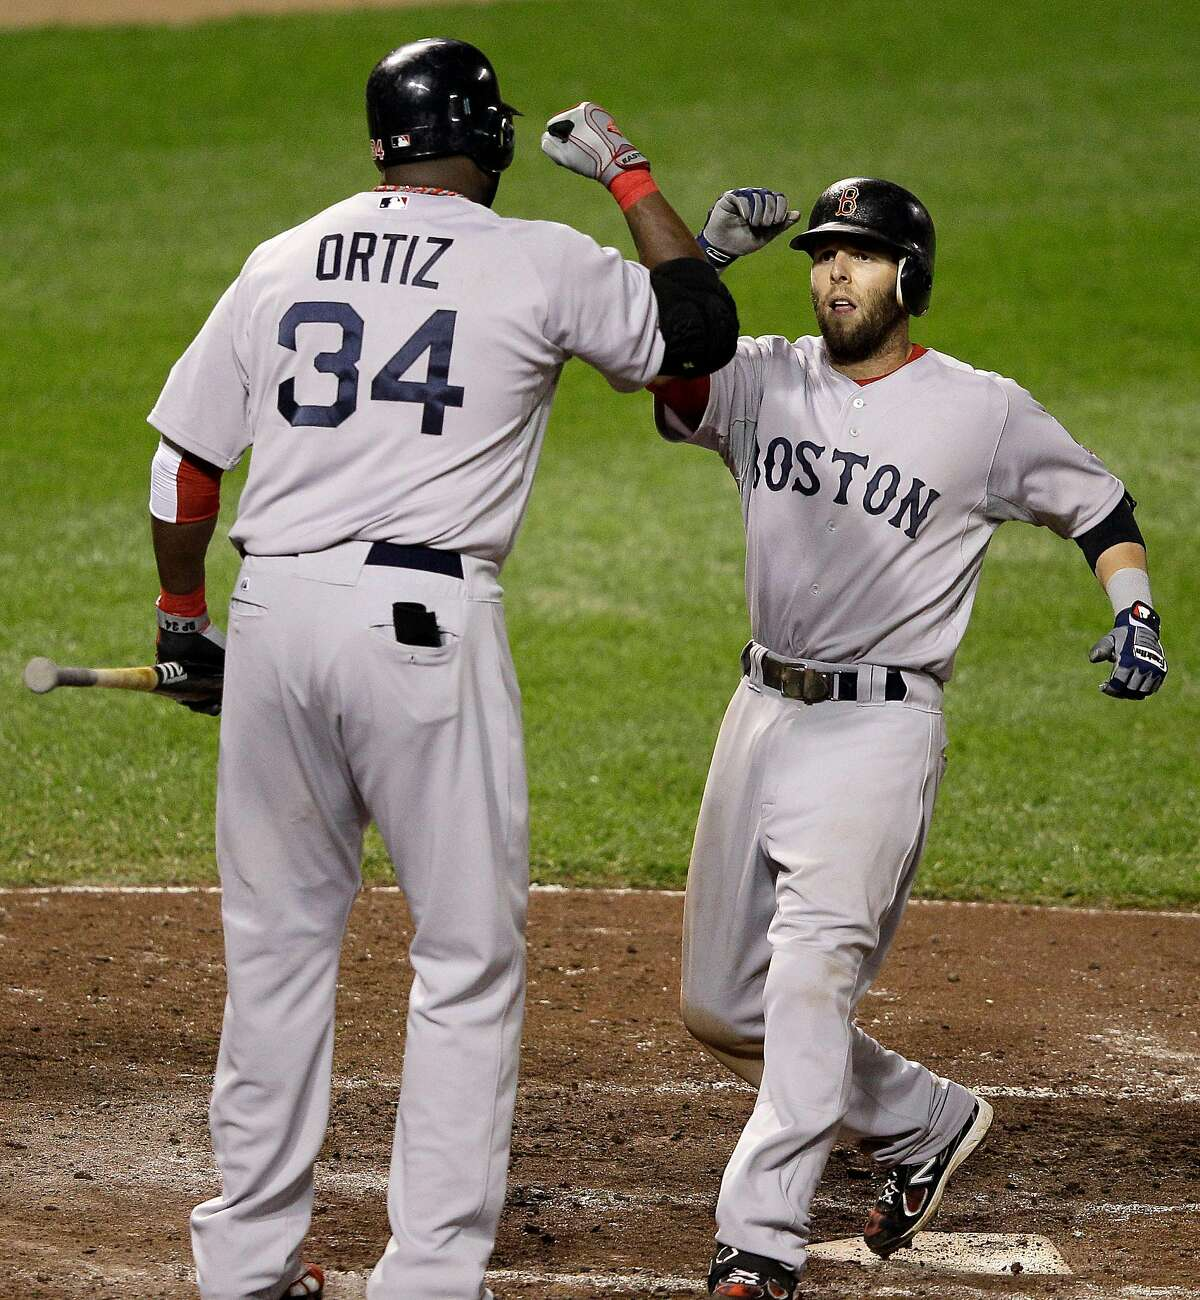 Boston's David Ortiz greets Dustin Pedroia after Pedroia's solo homer against the Orioles on Sept. 28, 2011, in Baltimore.